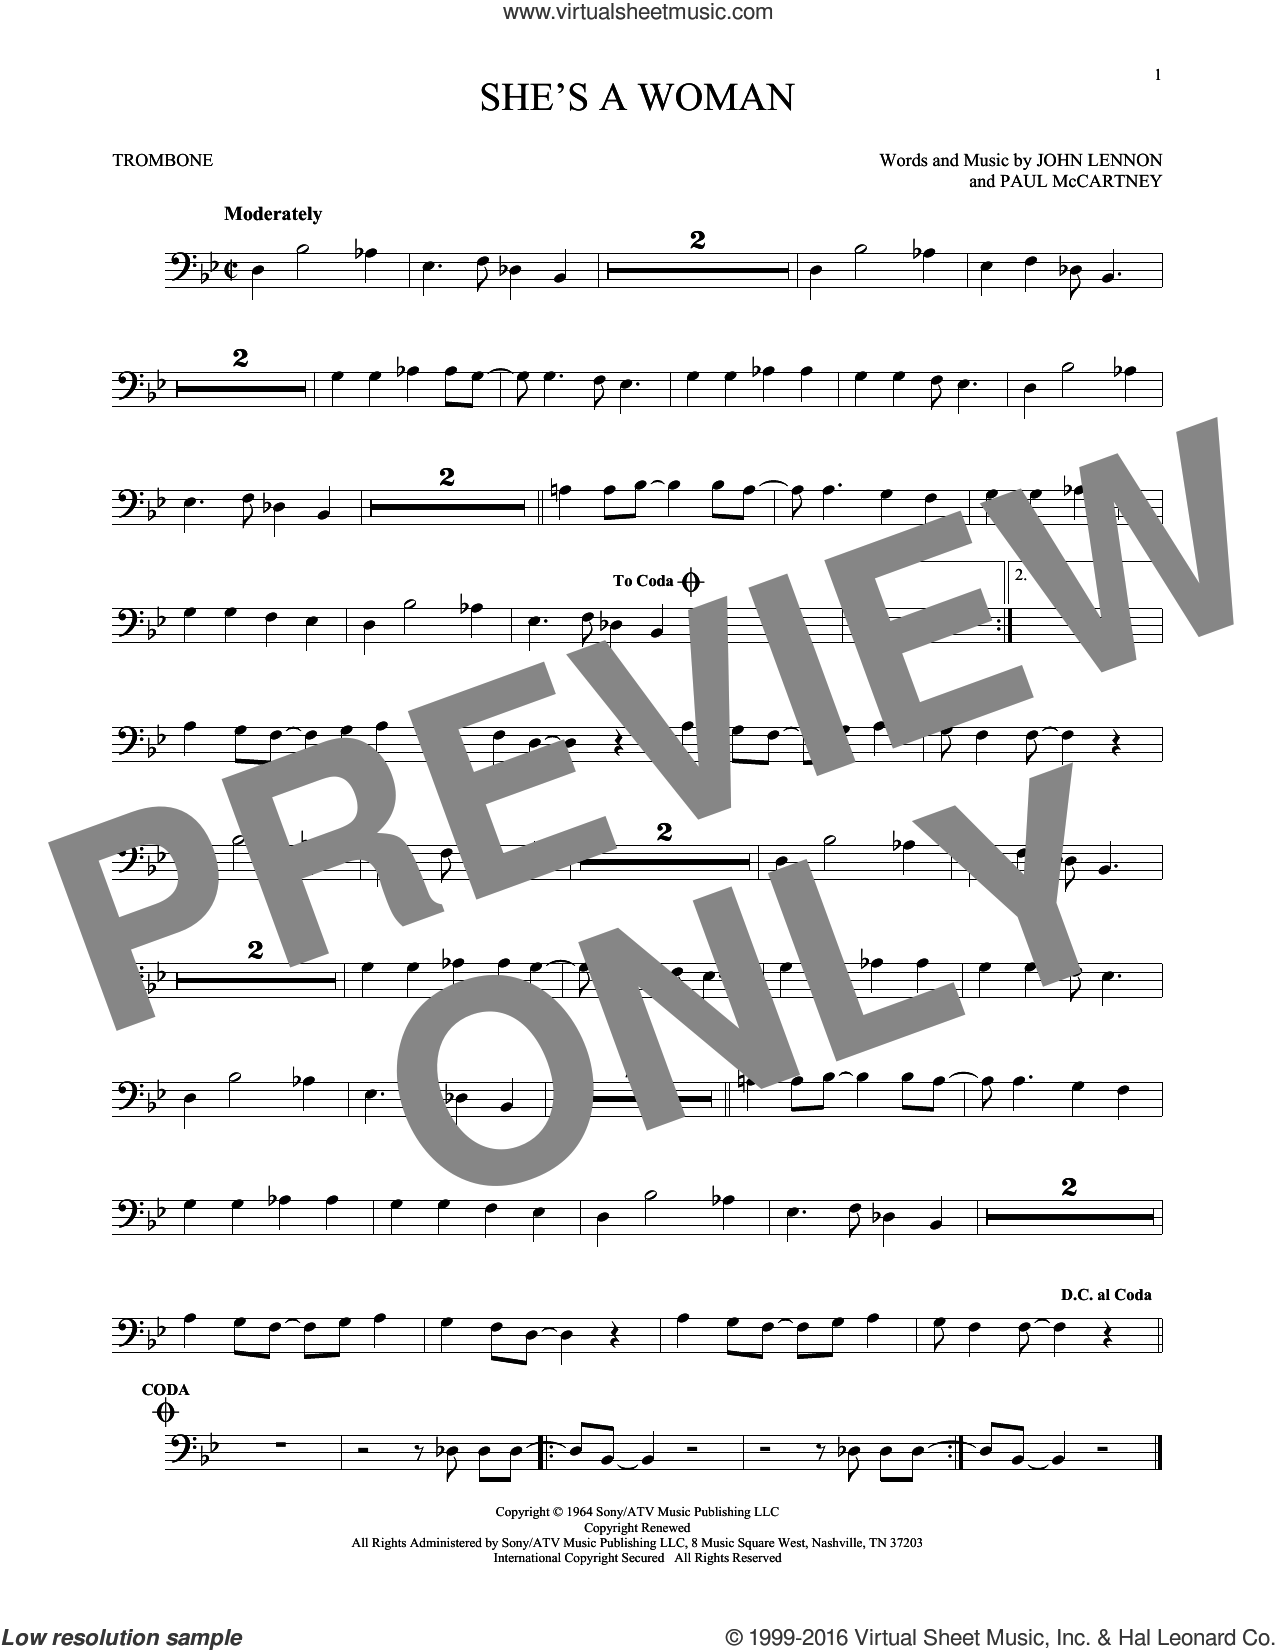 She's A Woman sheet music for trombone solo by Paul McCartney